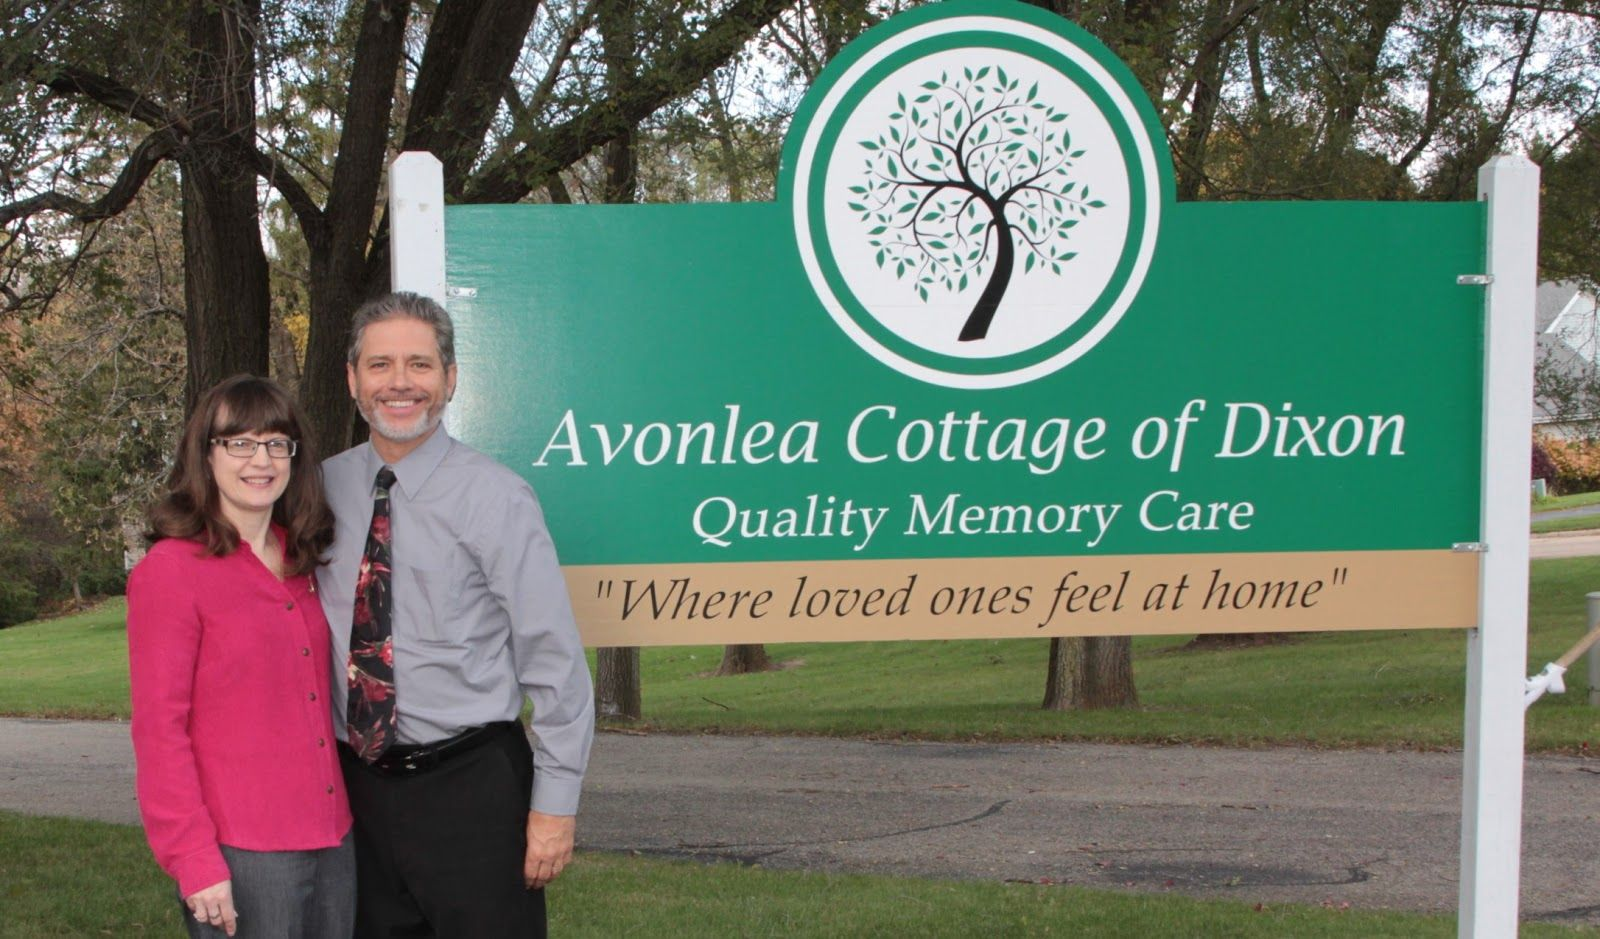 A Message From Avalynda Casey Owner Of Avonlea Cottage In